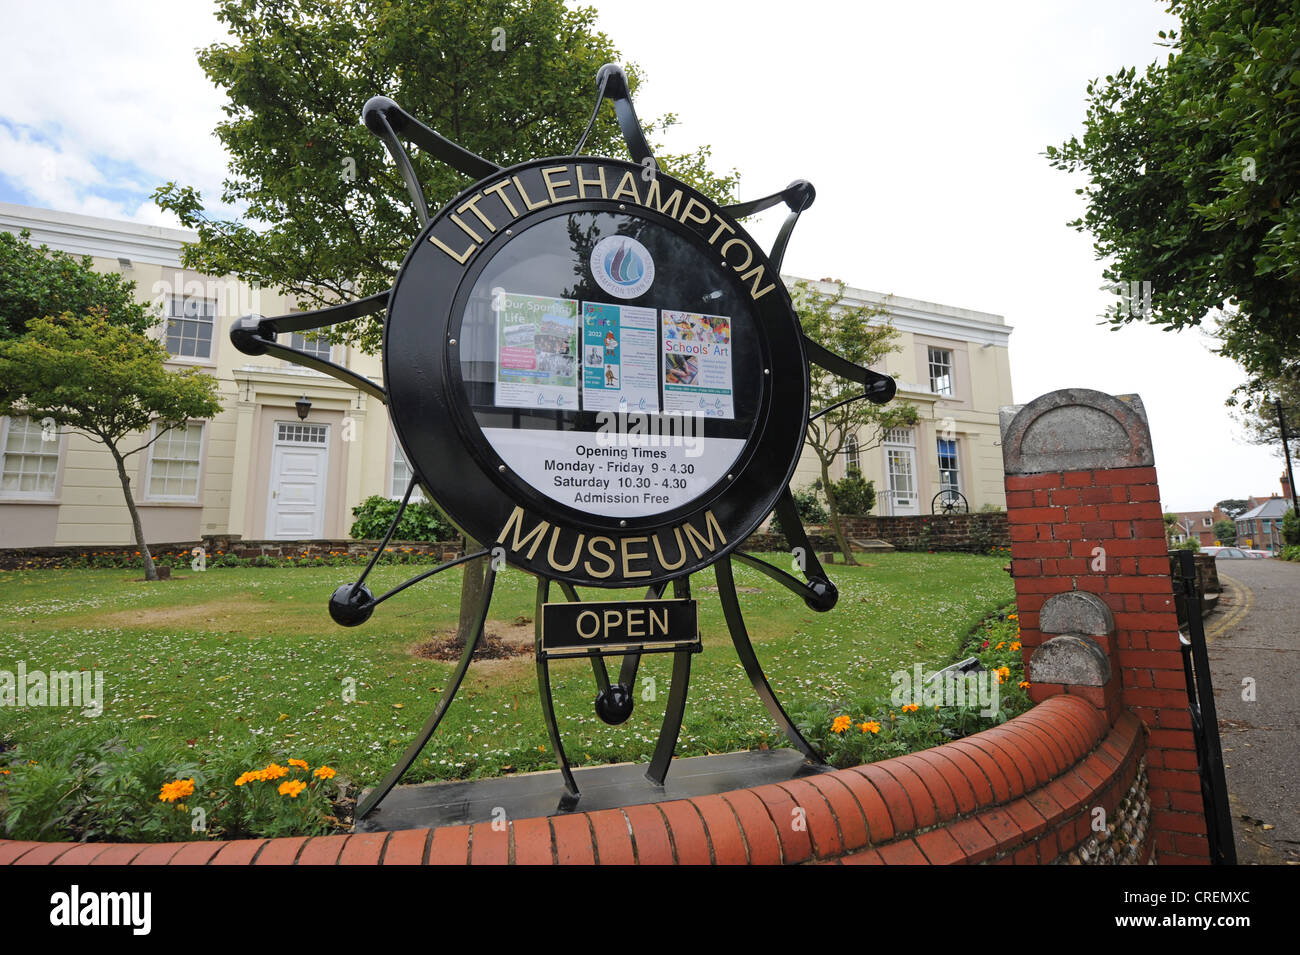 Littlehampton Museum and town council offices West Sussex UK - Stock Image